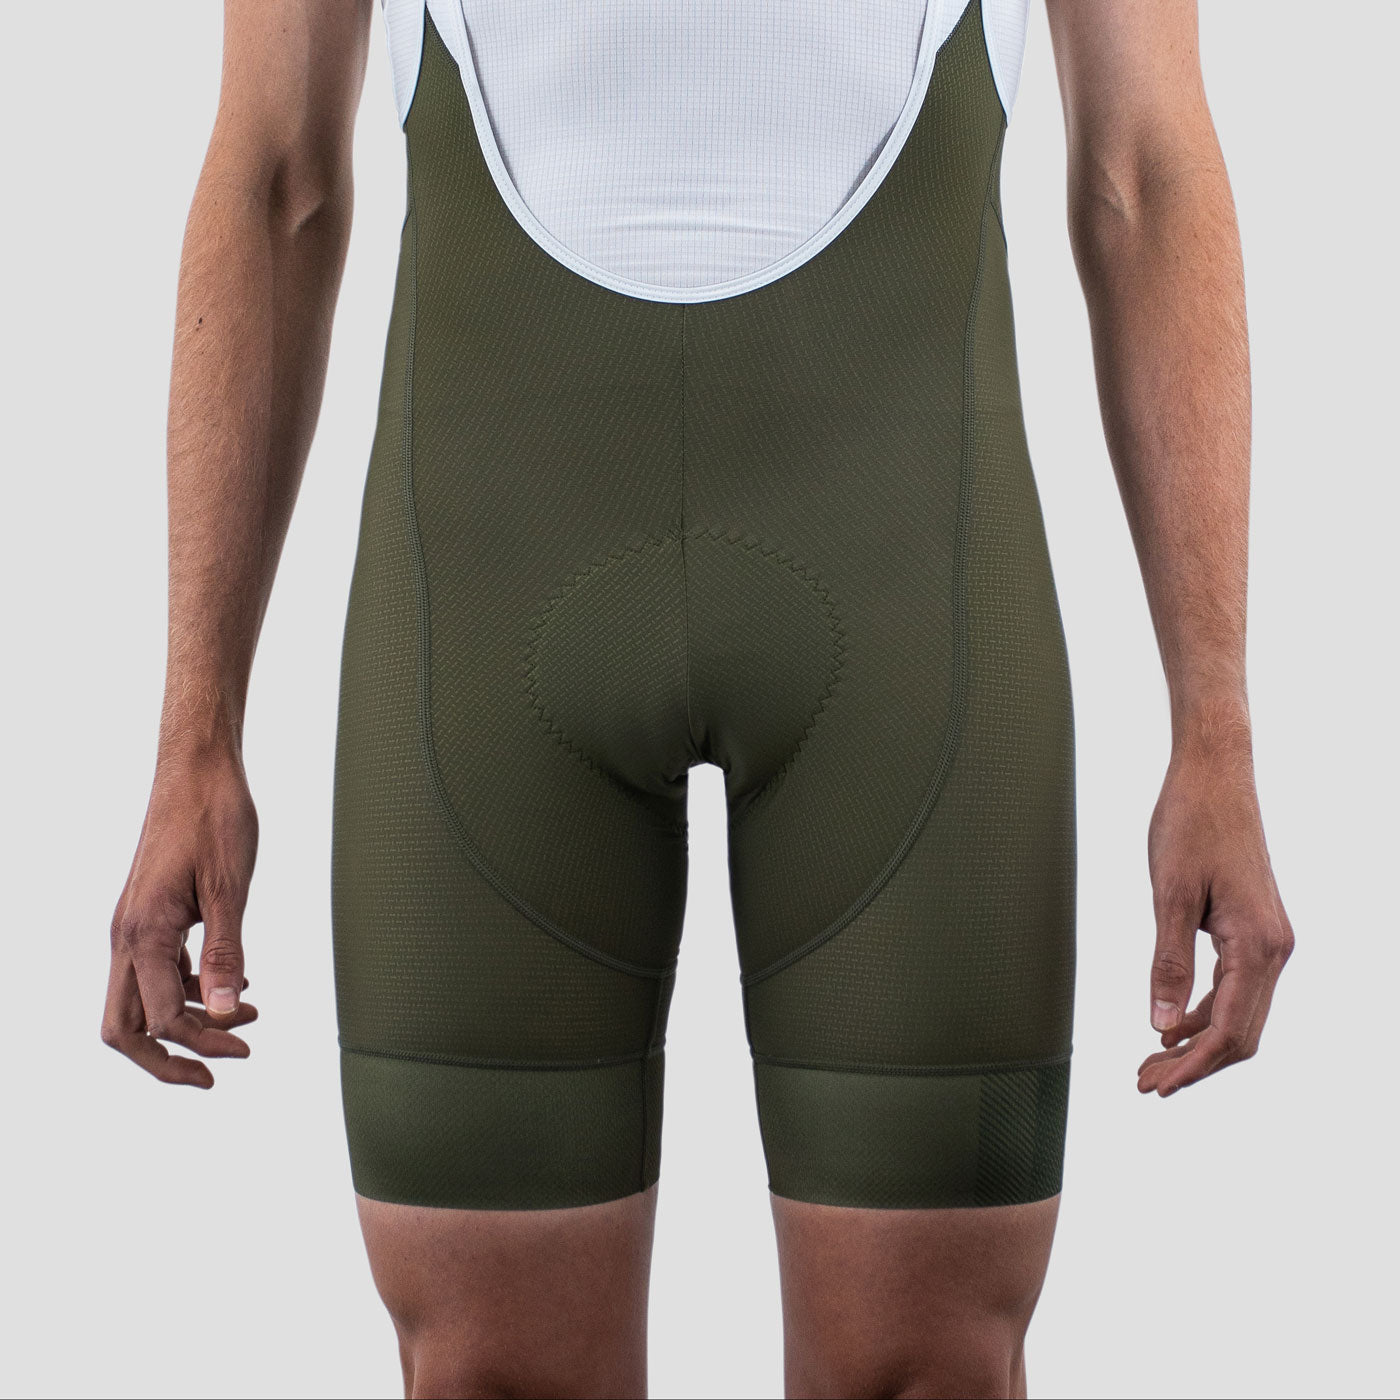 House Bib Shorts - Olive Block (XXL Only)